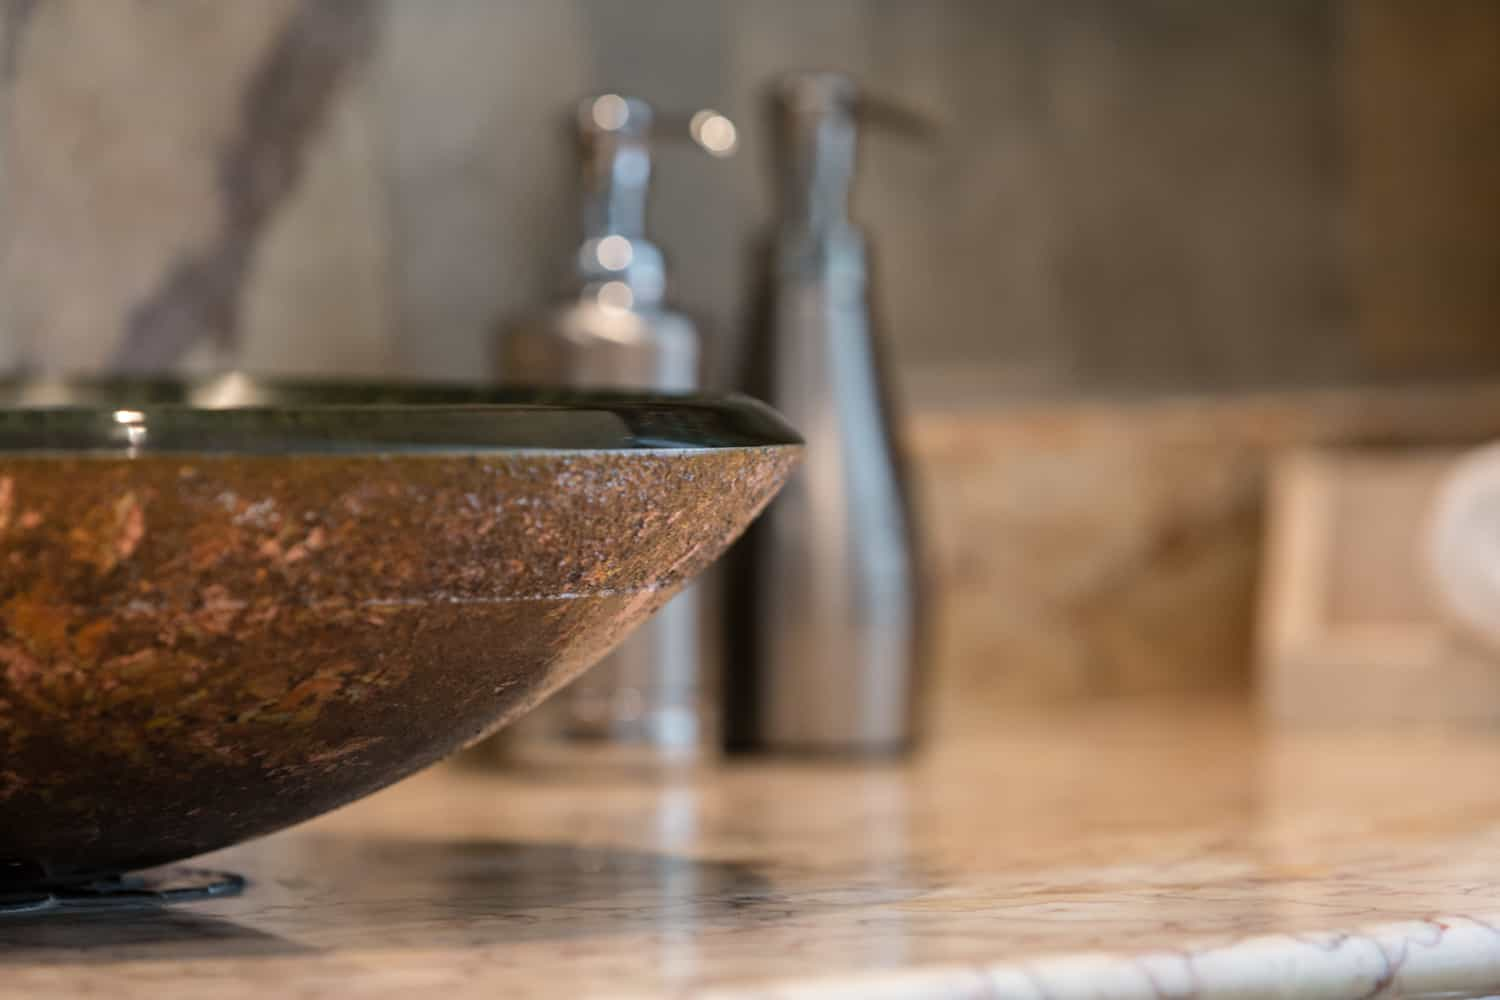 Ornate glass bowl sink on natural stone counter in bathroom.